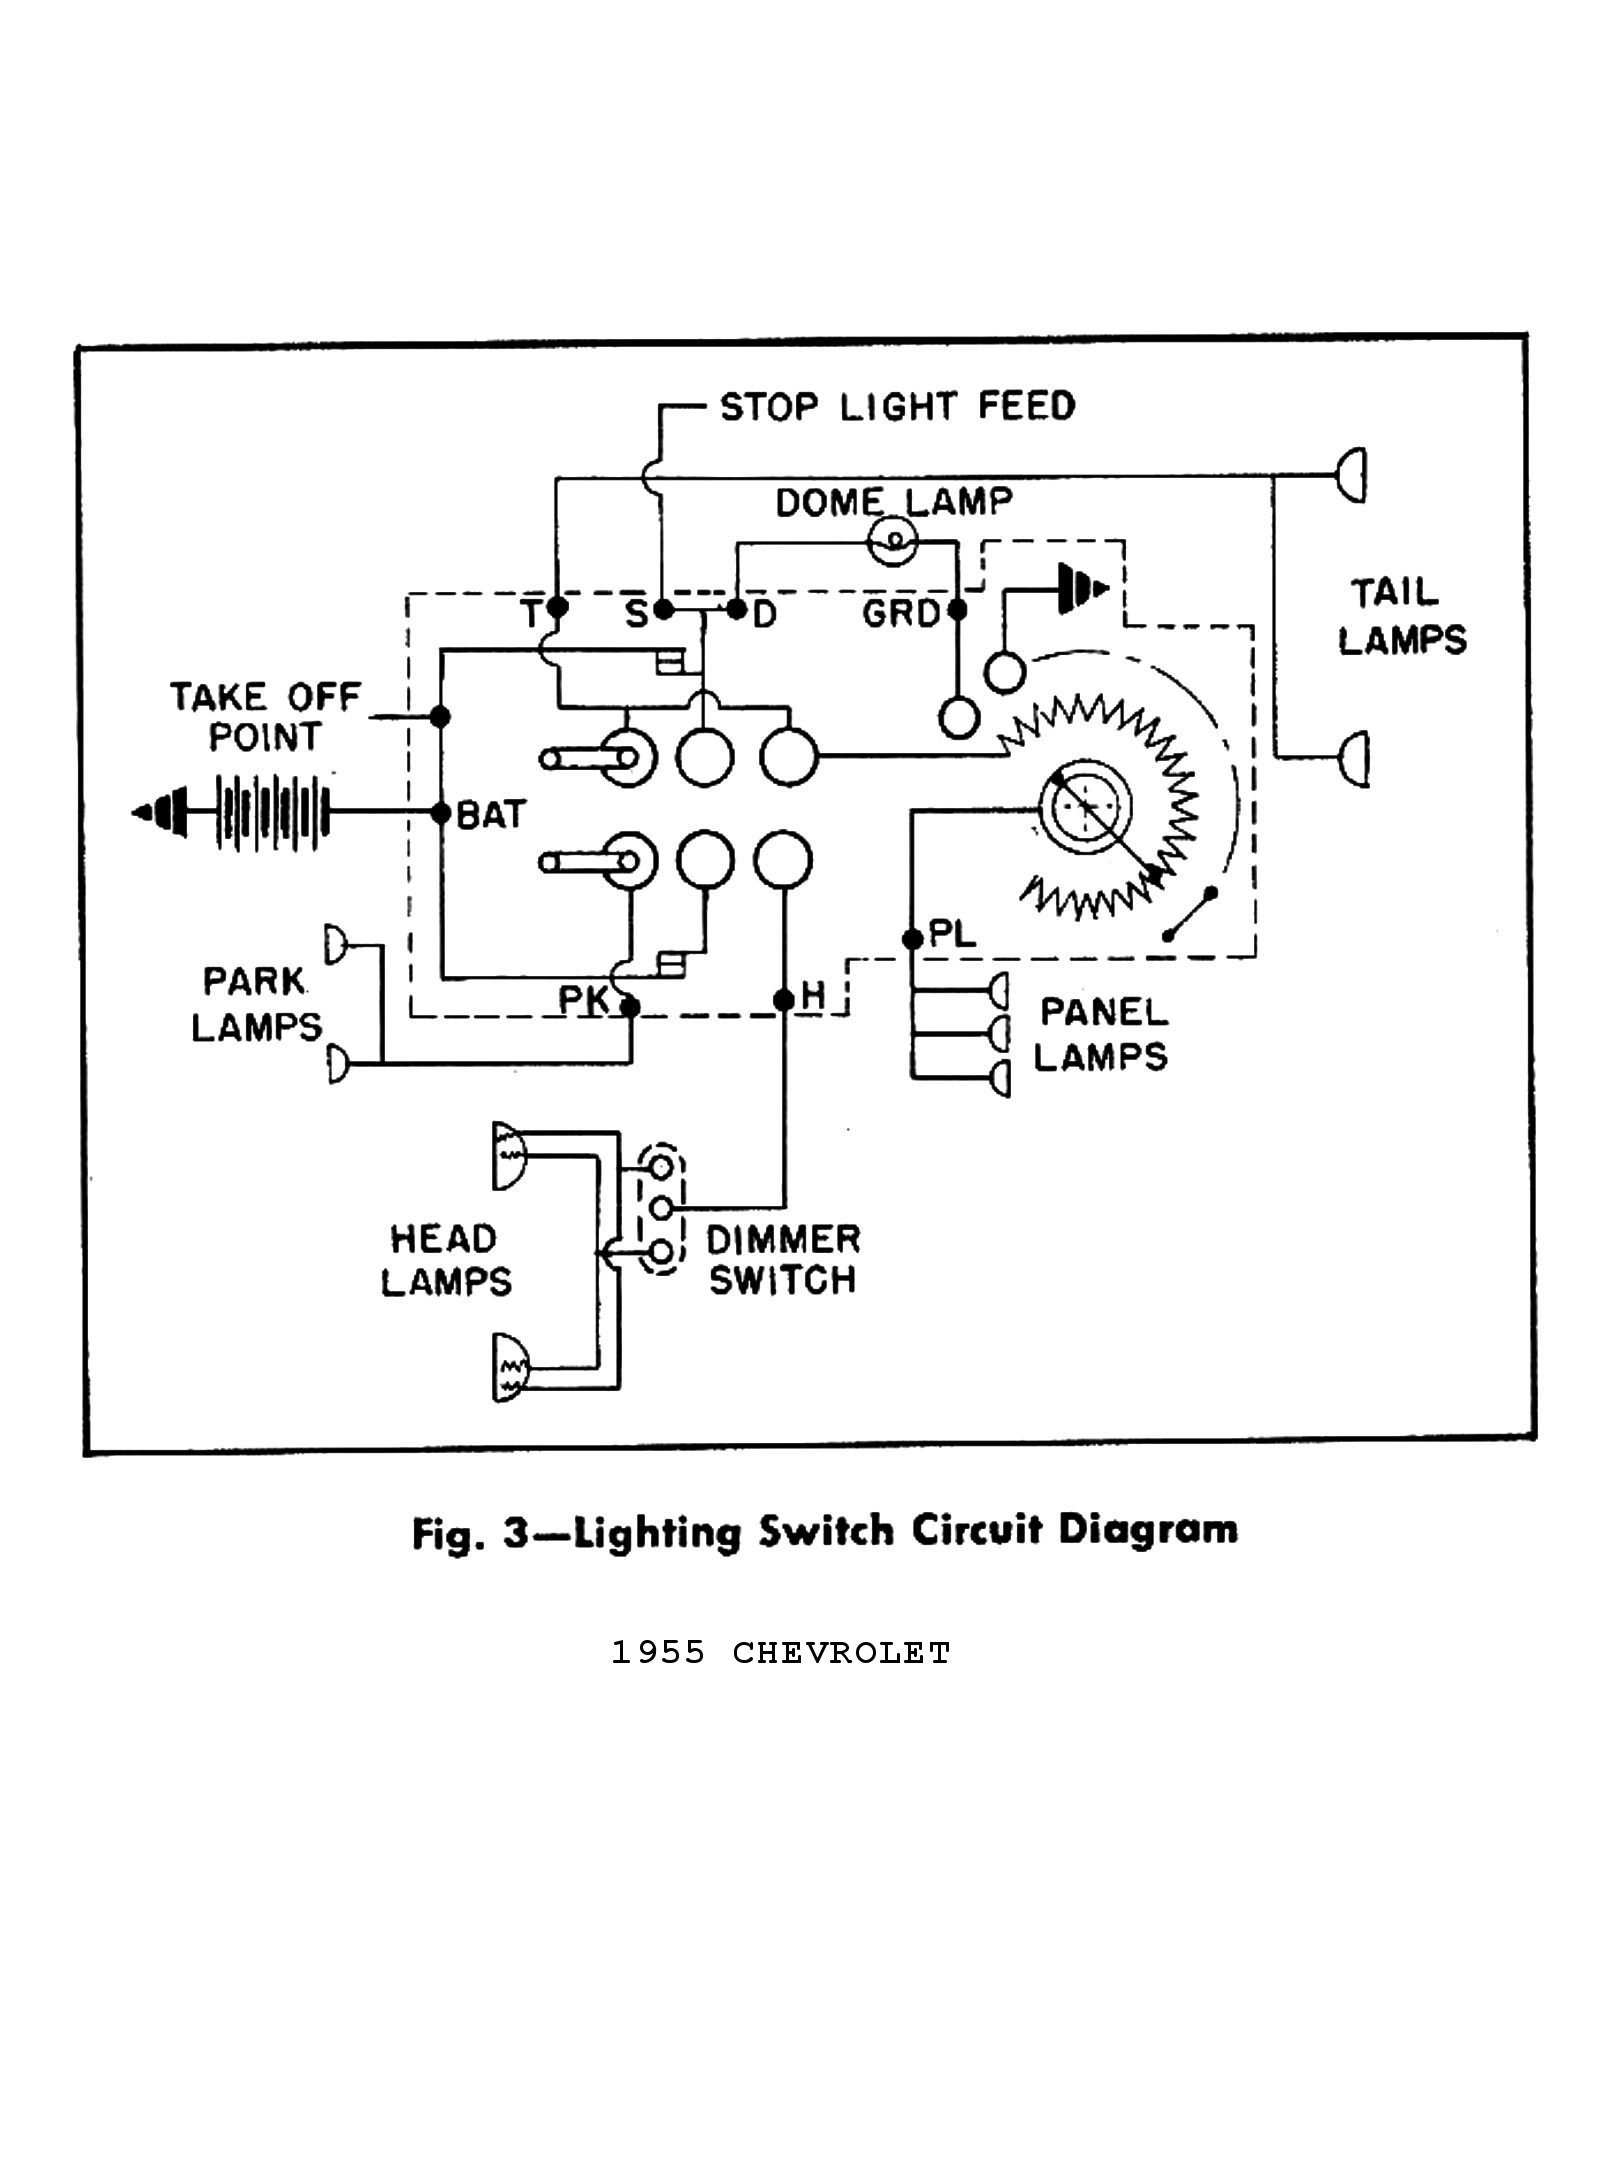 55ctsm1203 1955 chevy wiring diagram 1955 pontiac wiring diagram \u2022 free chevrolet headlight switch wiring diagram at bayanpartner.co